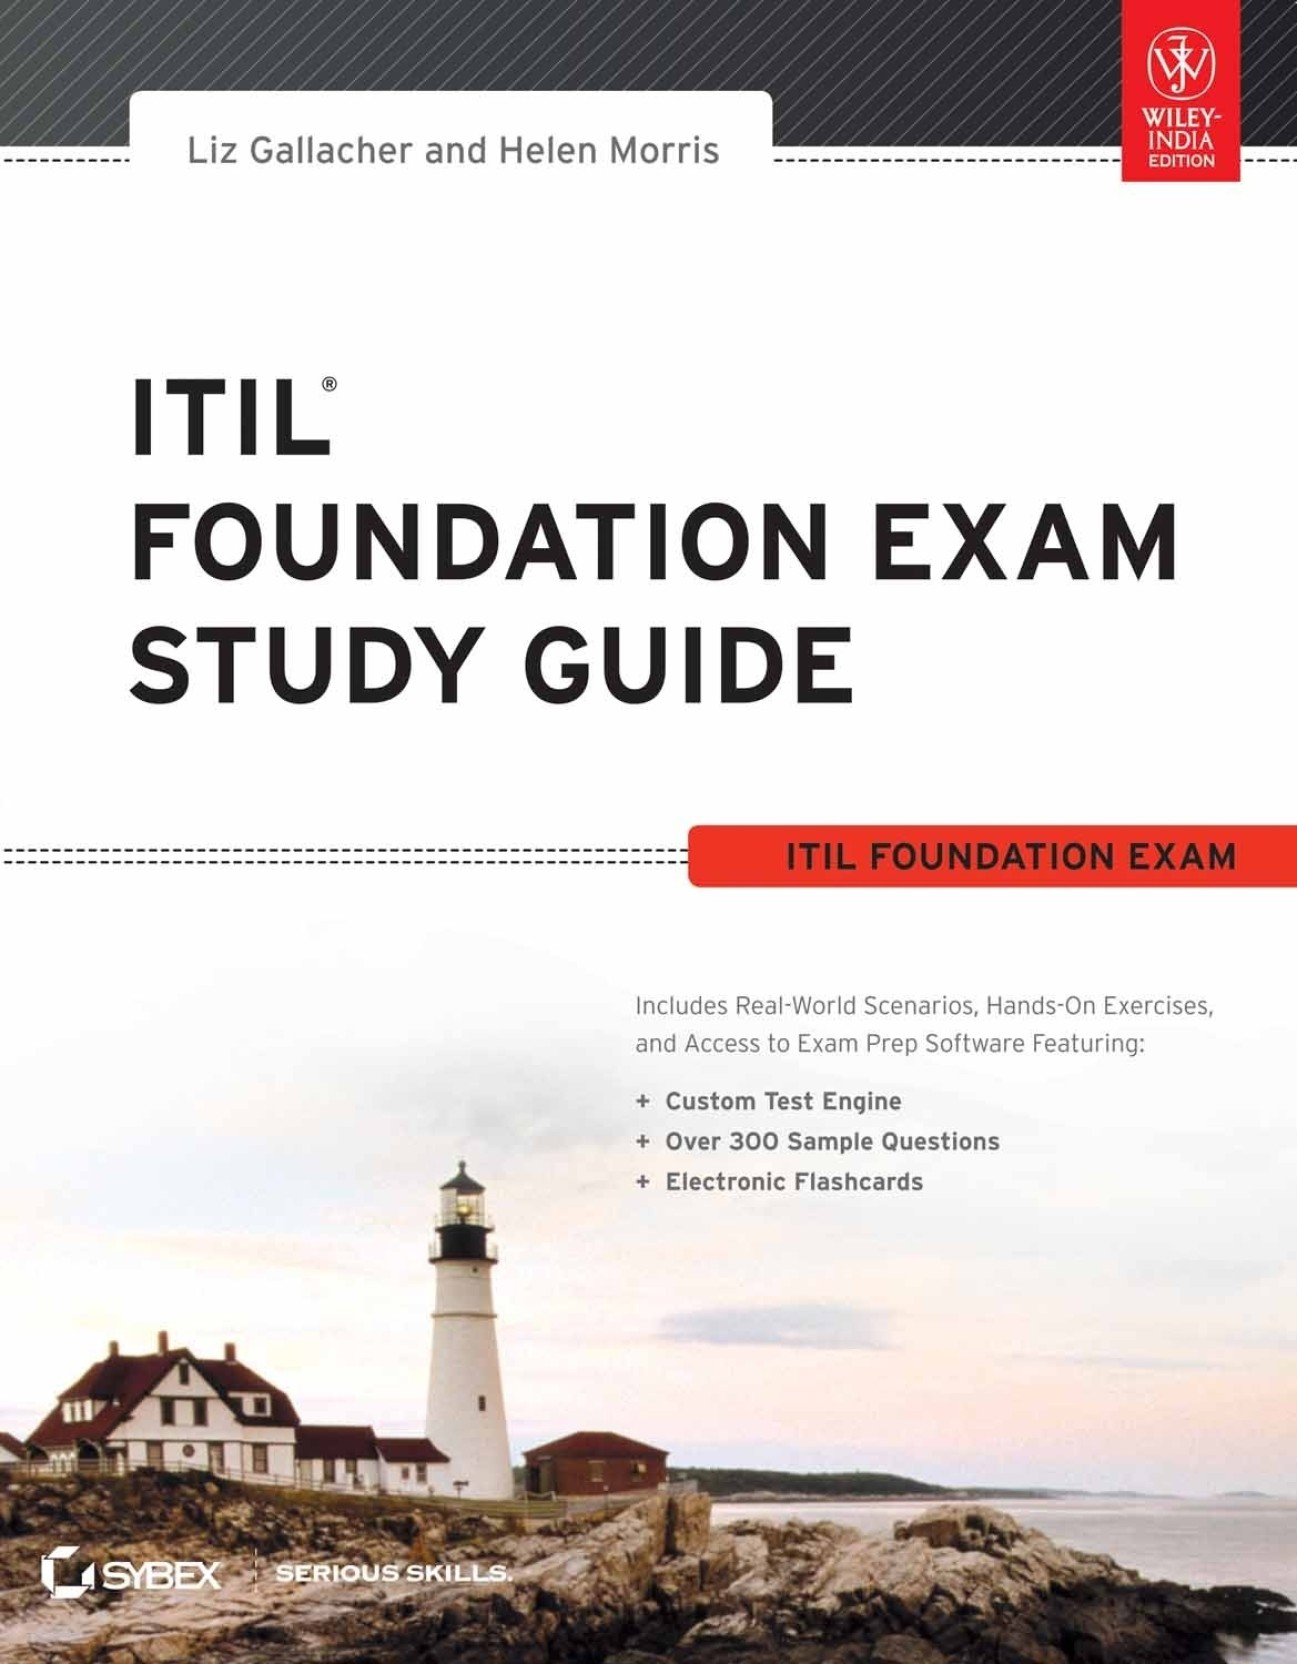 Itil foundation exam study guide buy itil foundation exam study itil foundation exam study guide share xflitez Gallery